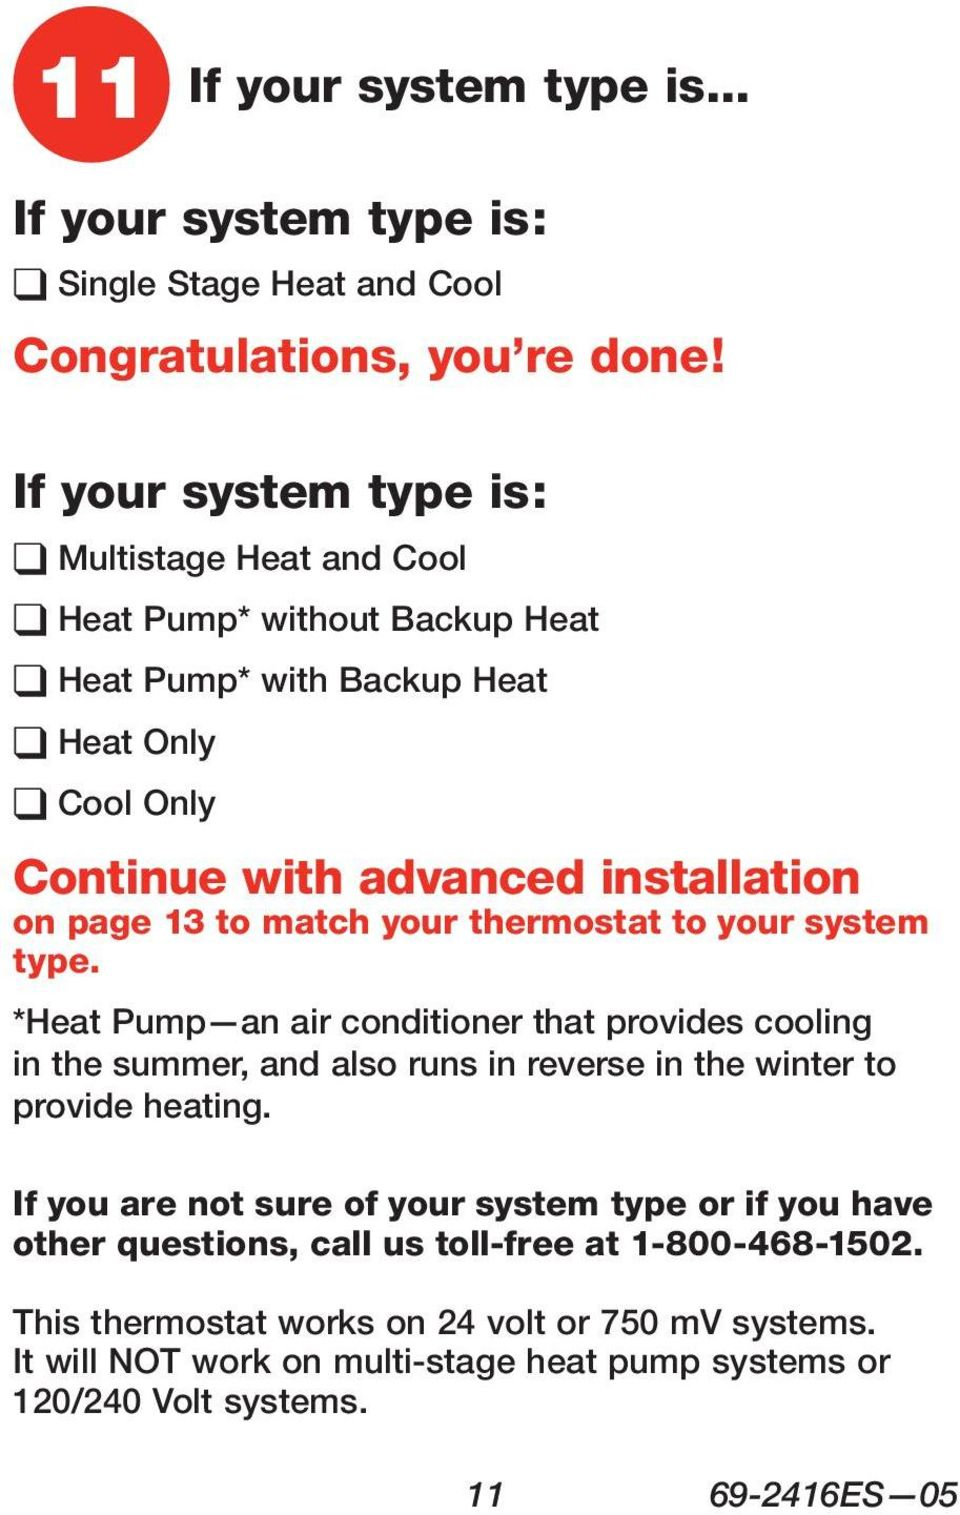 page 13 to match your thermostat to your system type. *Heat Pump an air conditioner that provides cooling in the summer, and also runs in reverse in the winter to provide heating.